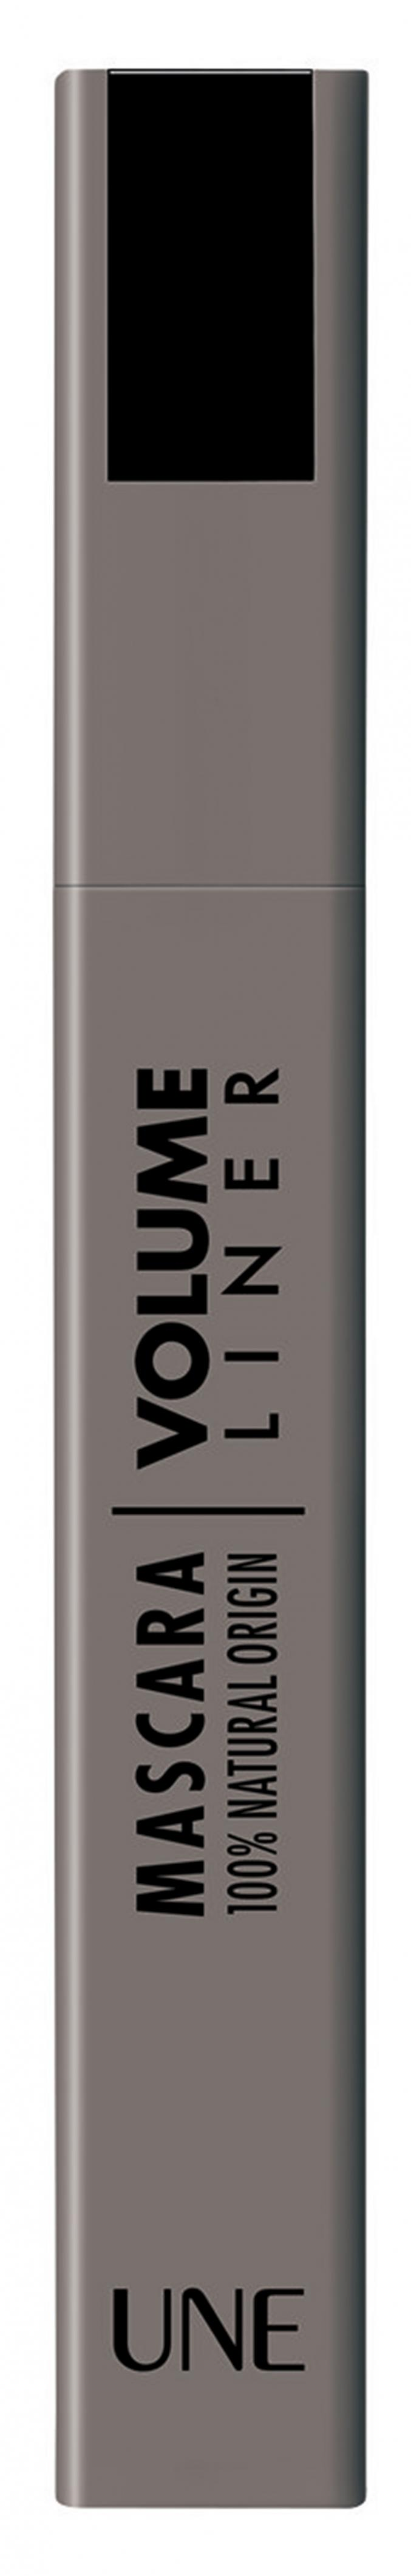 Mascara Volume liner illusion (UNE)